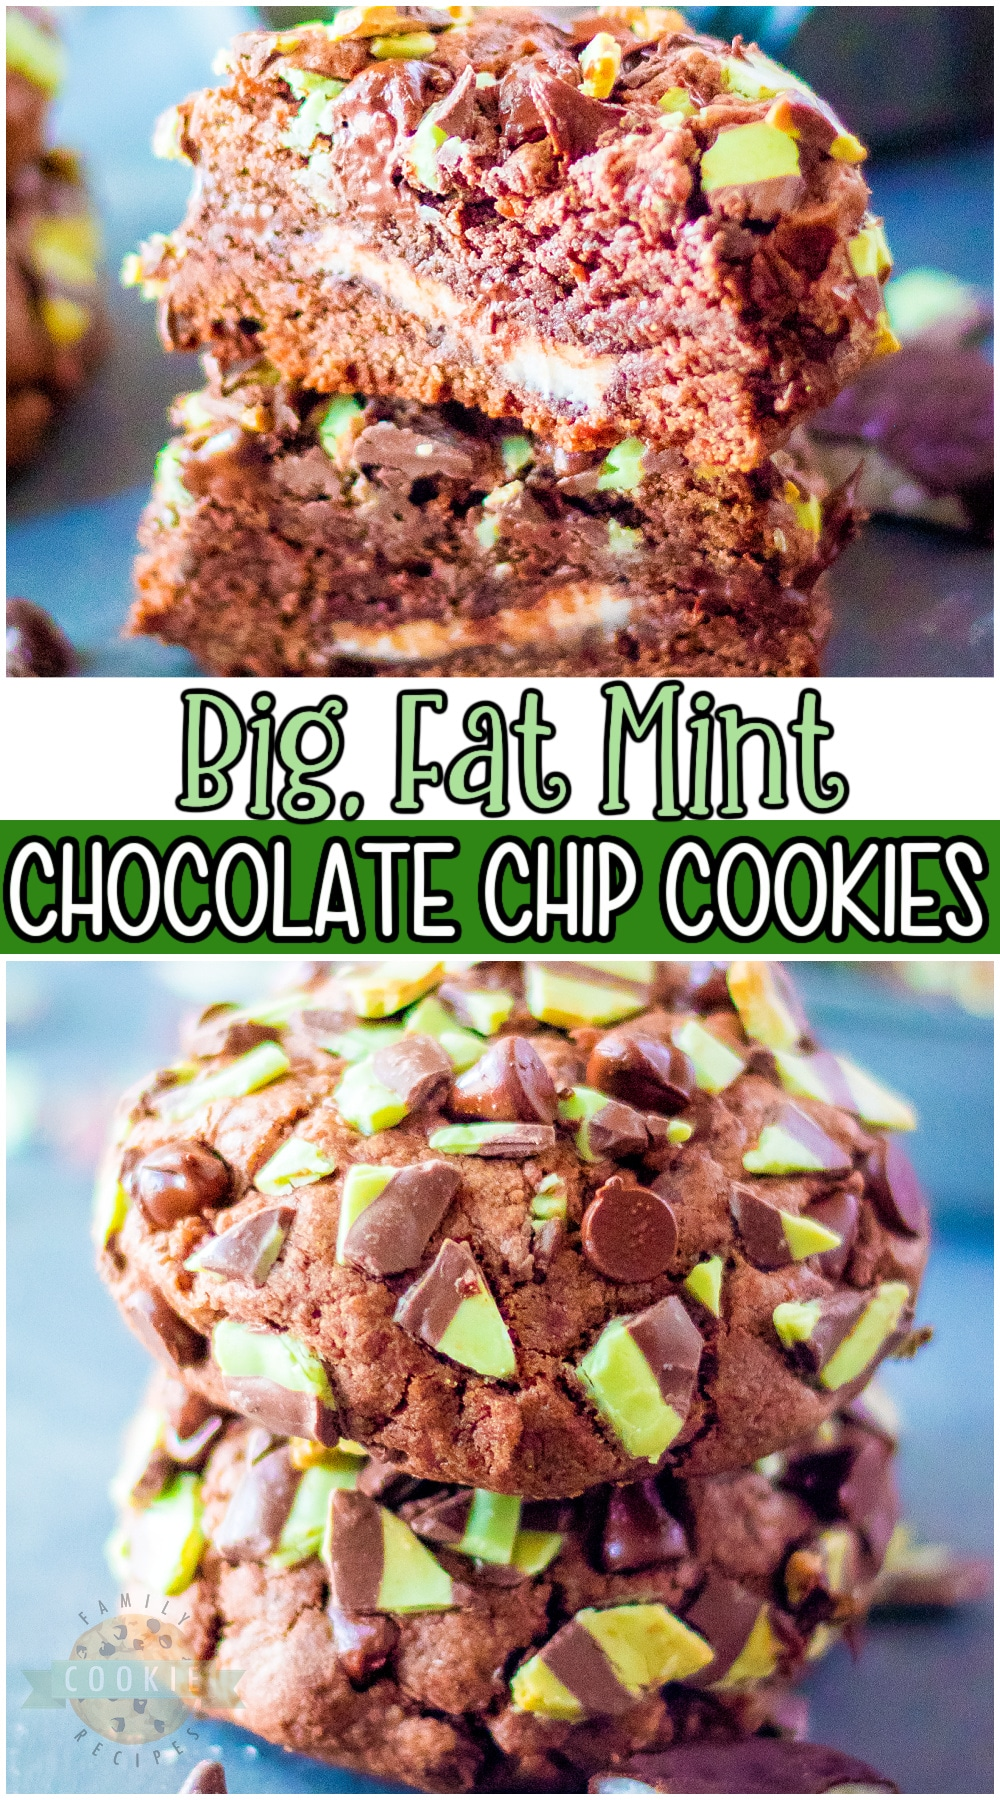 Big, Fat Mint Chocolate Chip Cookies are an indulgent blend of chocolate mint in an oversized cookie! Over the top cookies with mint chips, chocolate chips & a mint patty inside! #mint #chocolate #cookies #baking #dessert #easyrecipe from FAMILY COOKIE RECIPES via @familycookierecipes